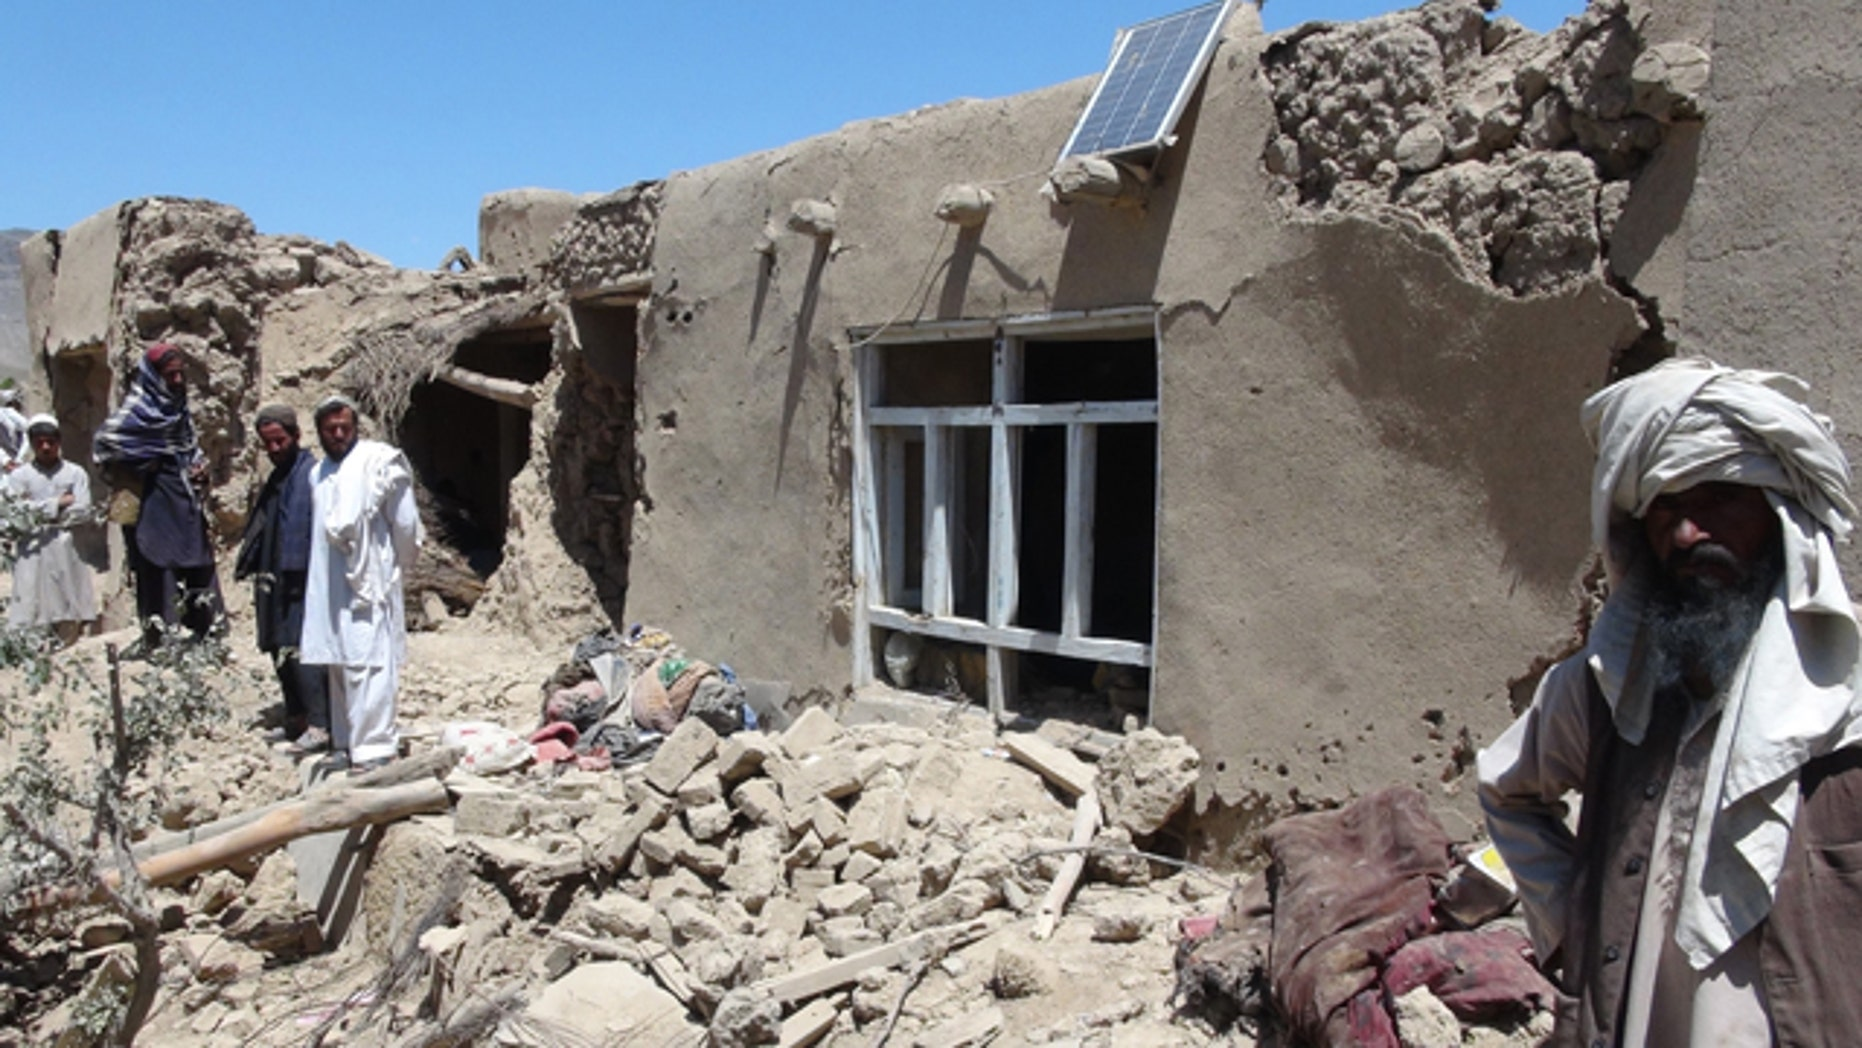 June 6, 2012: Afghan villagers gather near a house destroyed in an apparent NATO raid in Logar province, south of Kabul, Afghanistan.